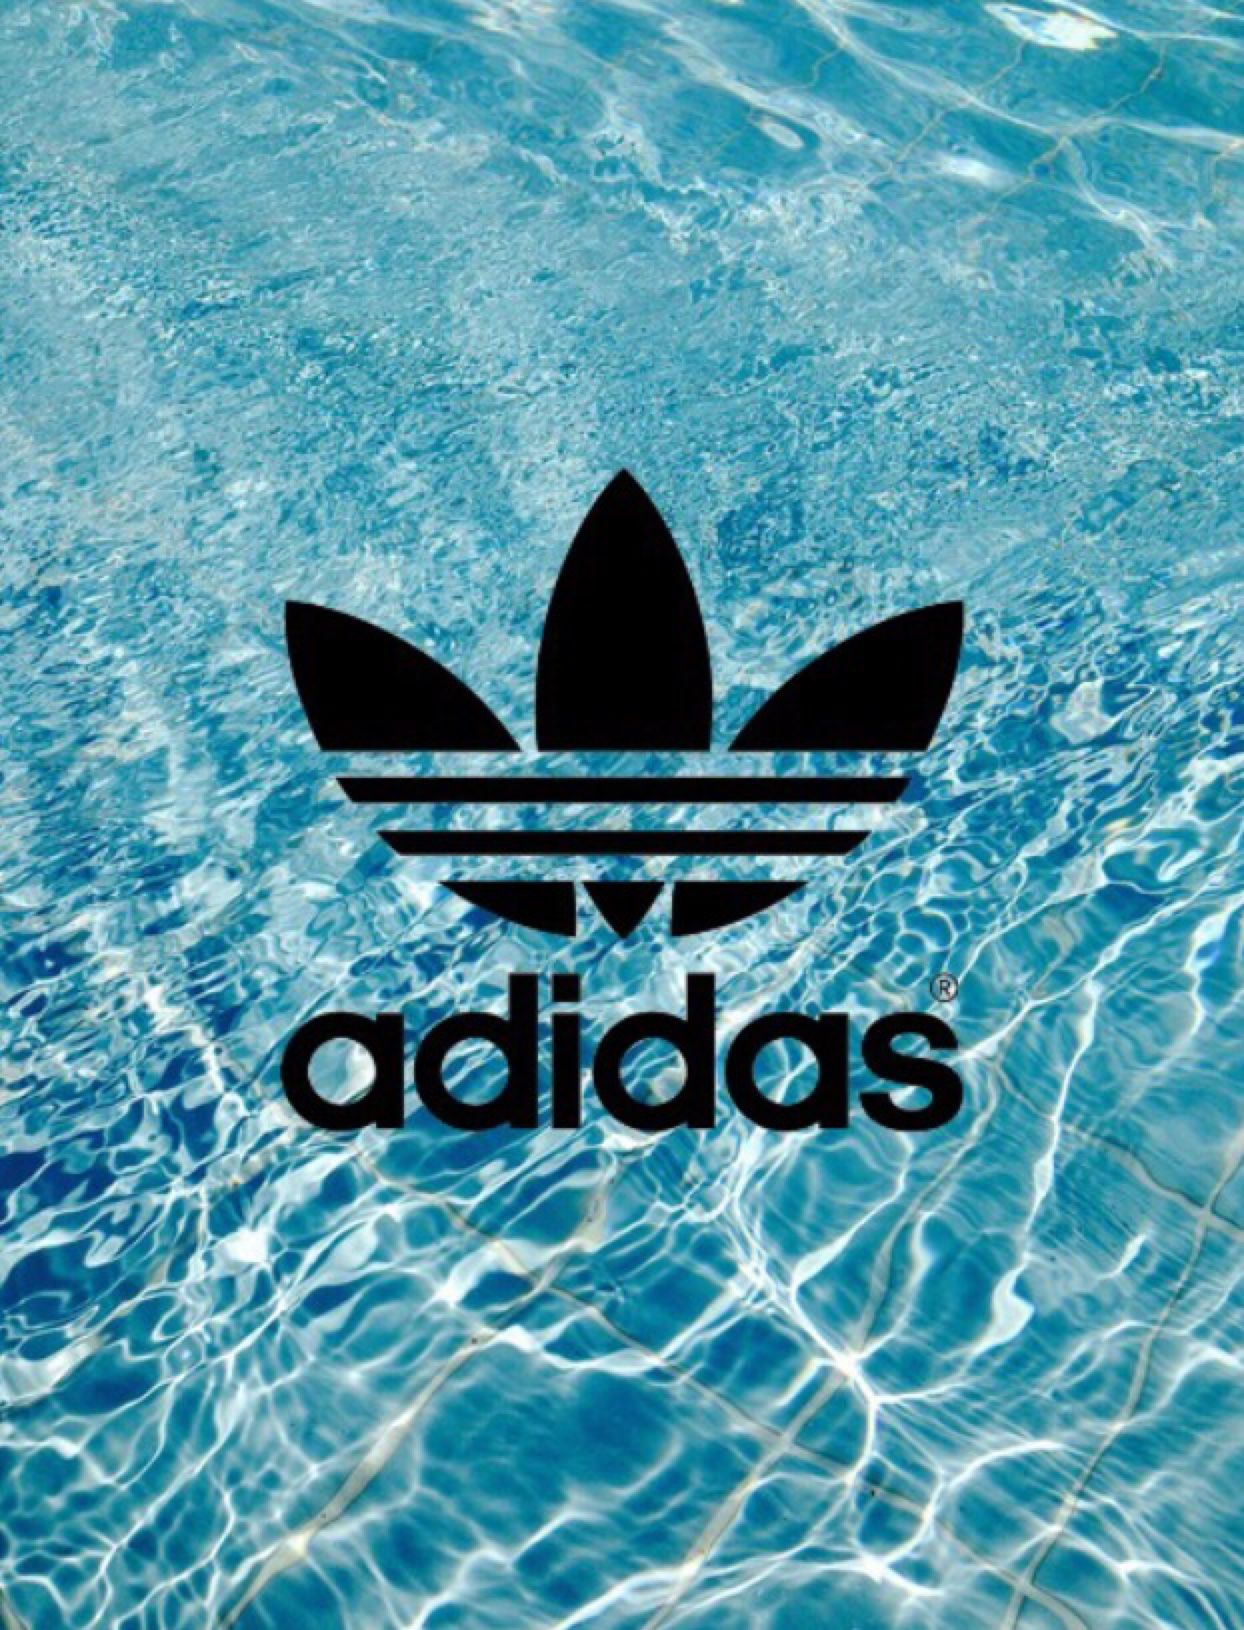 WallpaperPhotoChaussures WallpaperPhotoChaussures Pinterest Adidas WallpaperPhotoChaussures Adidas Adidas Adidas Pinterest Pinterest 7gYIf6myvb